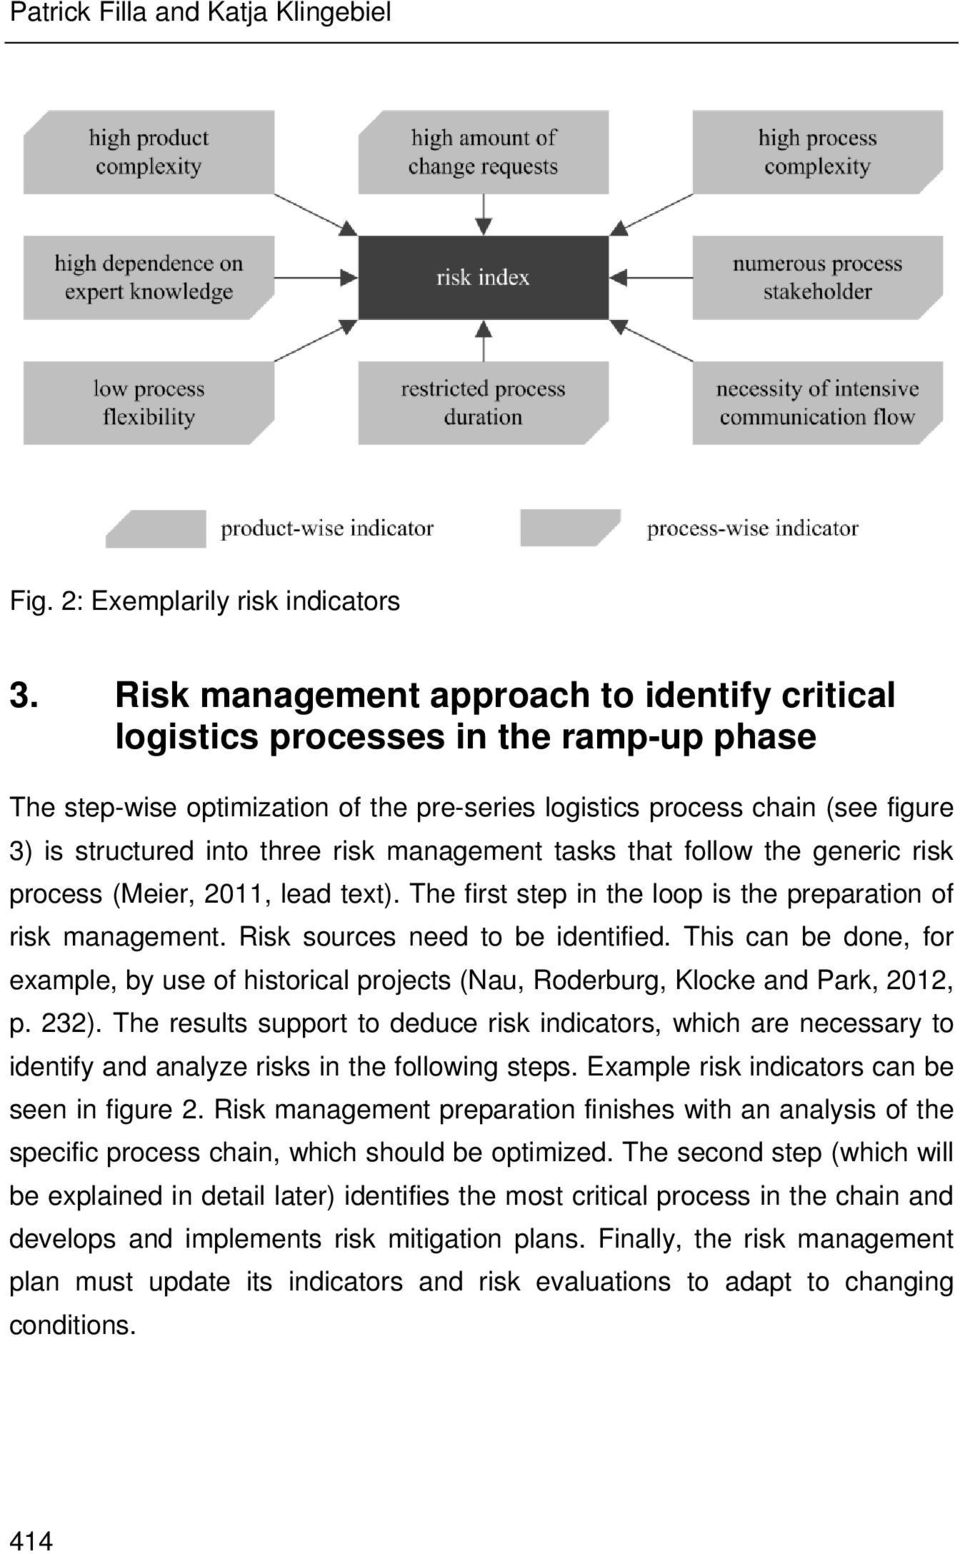 risk management tasks that follow the generic risk process (Meier, 2011, lead text). The first step in the loop is the preparation of risk management. Risk sources need to be identified.